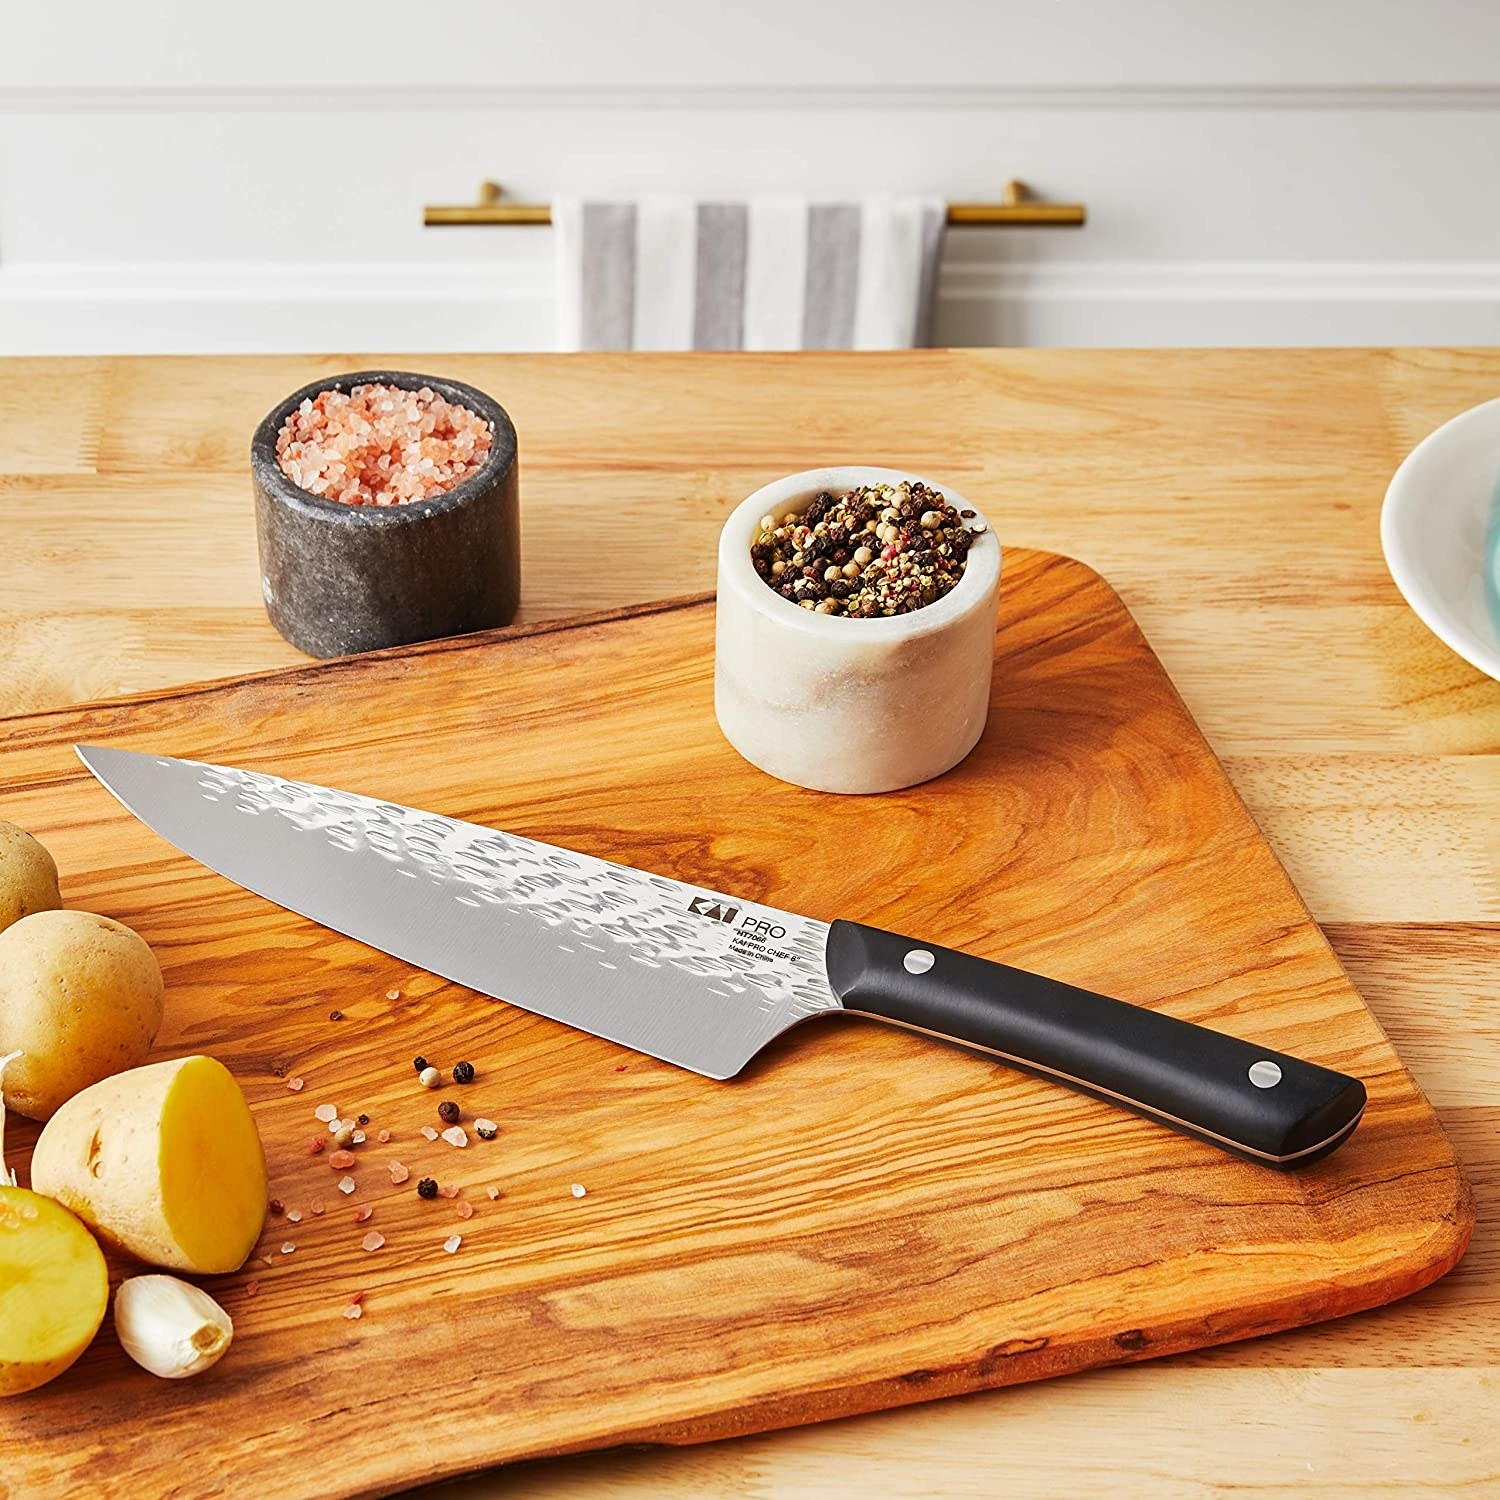 a fancy chef's knife with a black handle on a cutting board